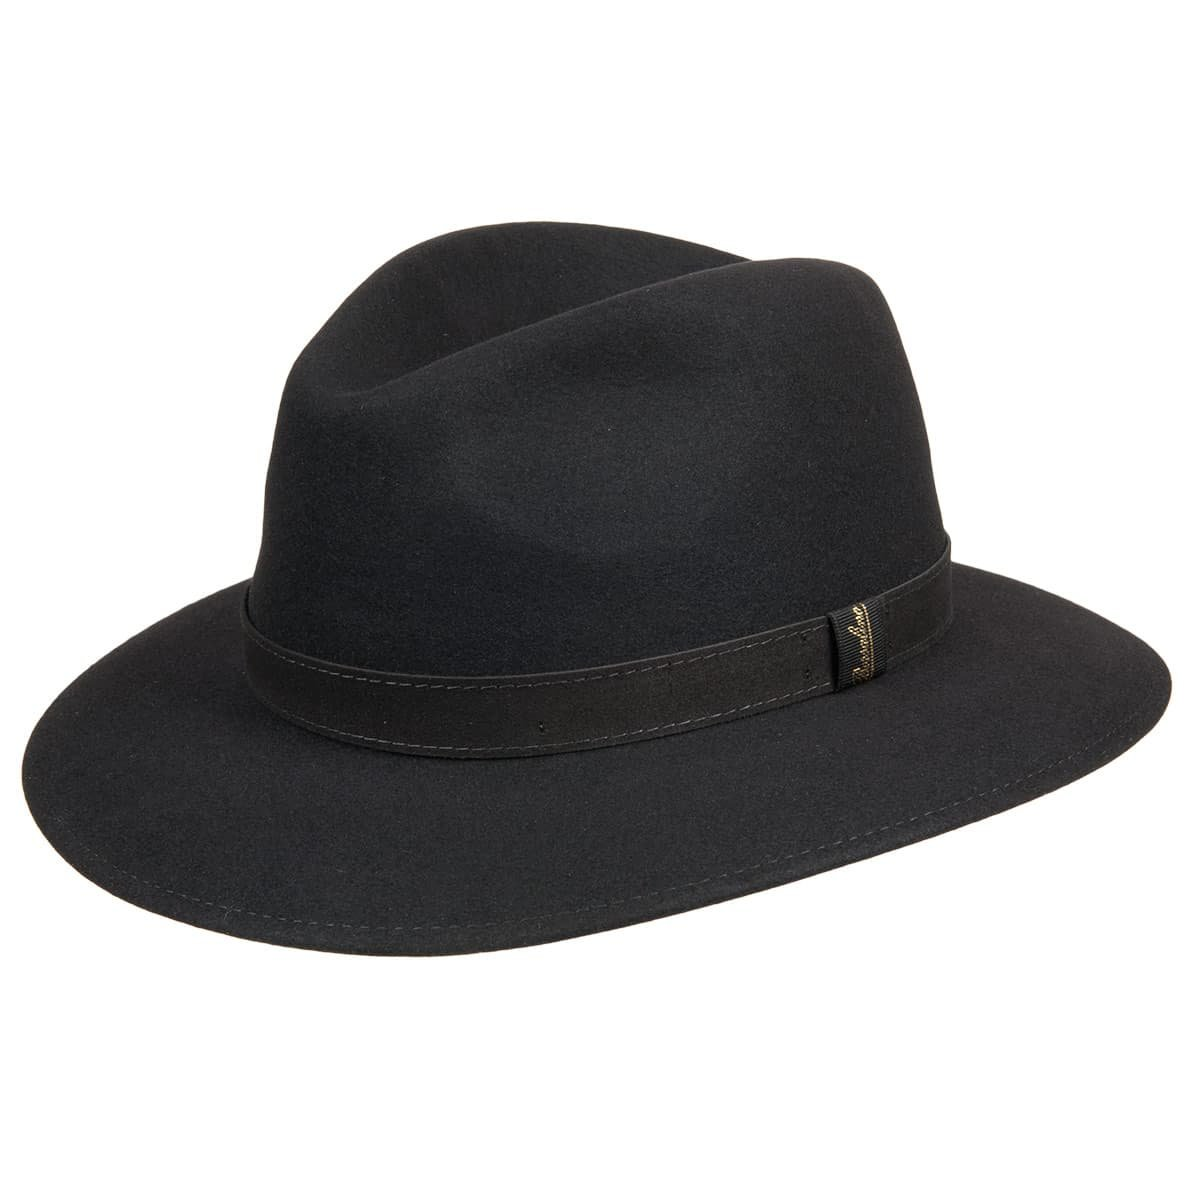 edb52f83810 Borsalino traveller hat in excellent quality